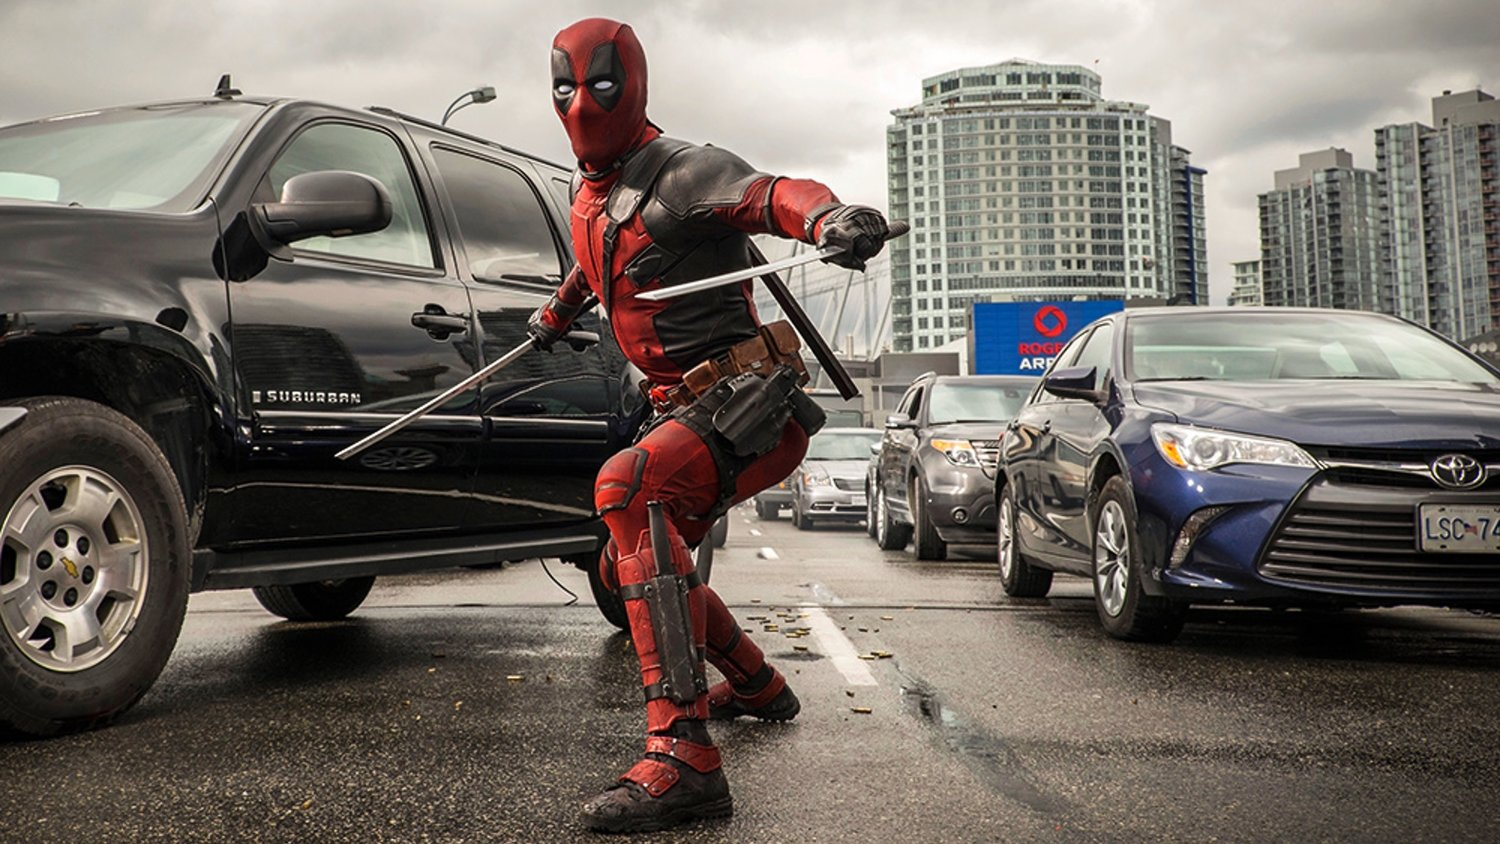 DEADPOOL 2 Director Wants to Deliver More Action and Irreverence